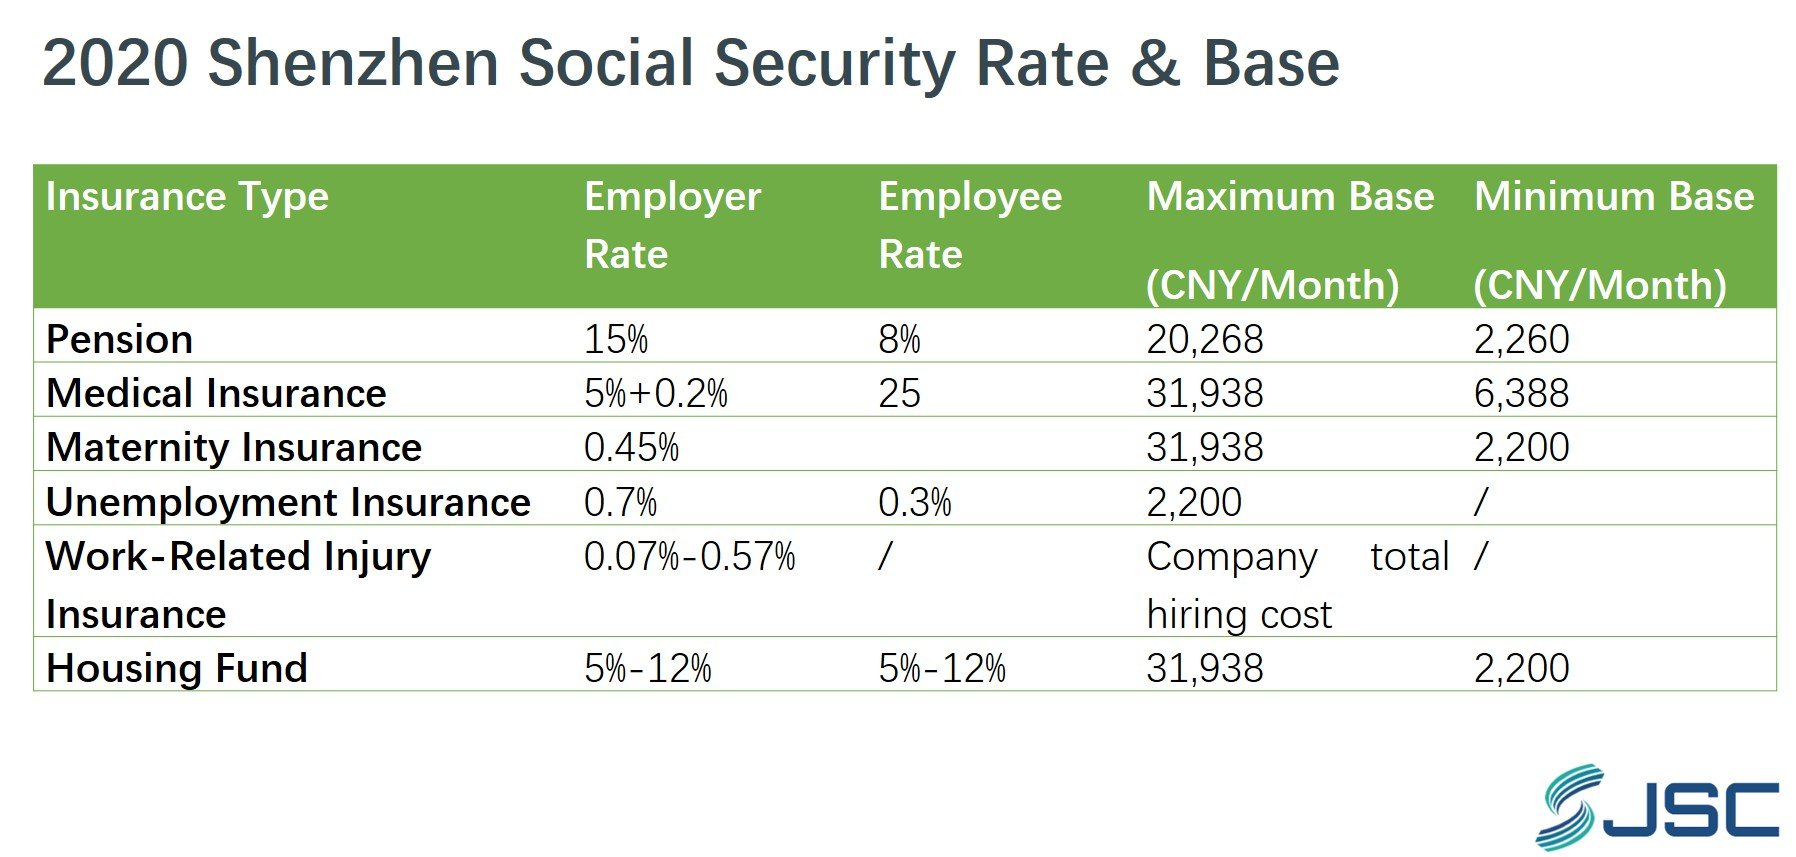 Shenzhen social security rate